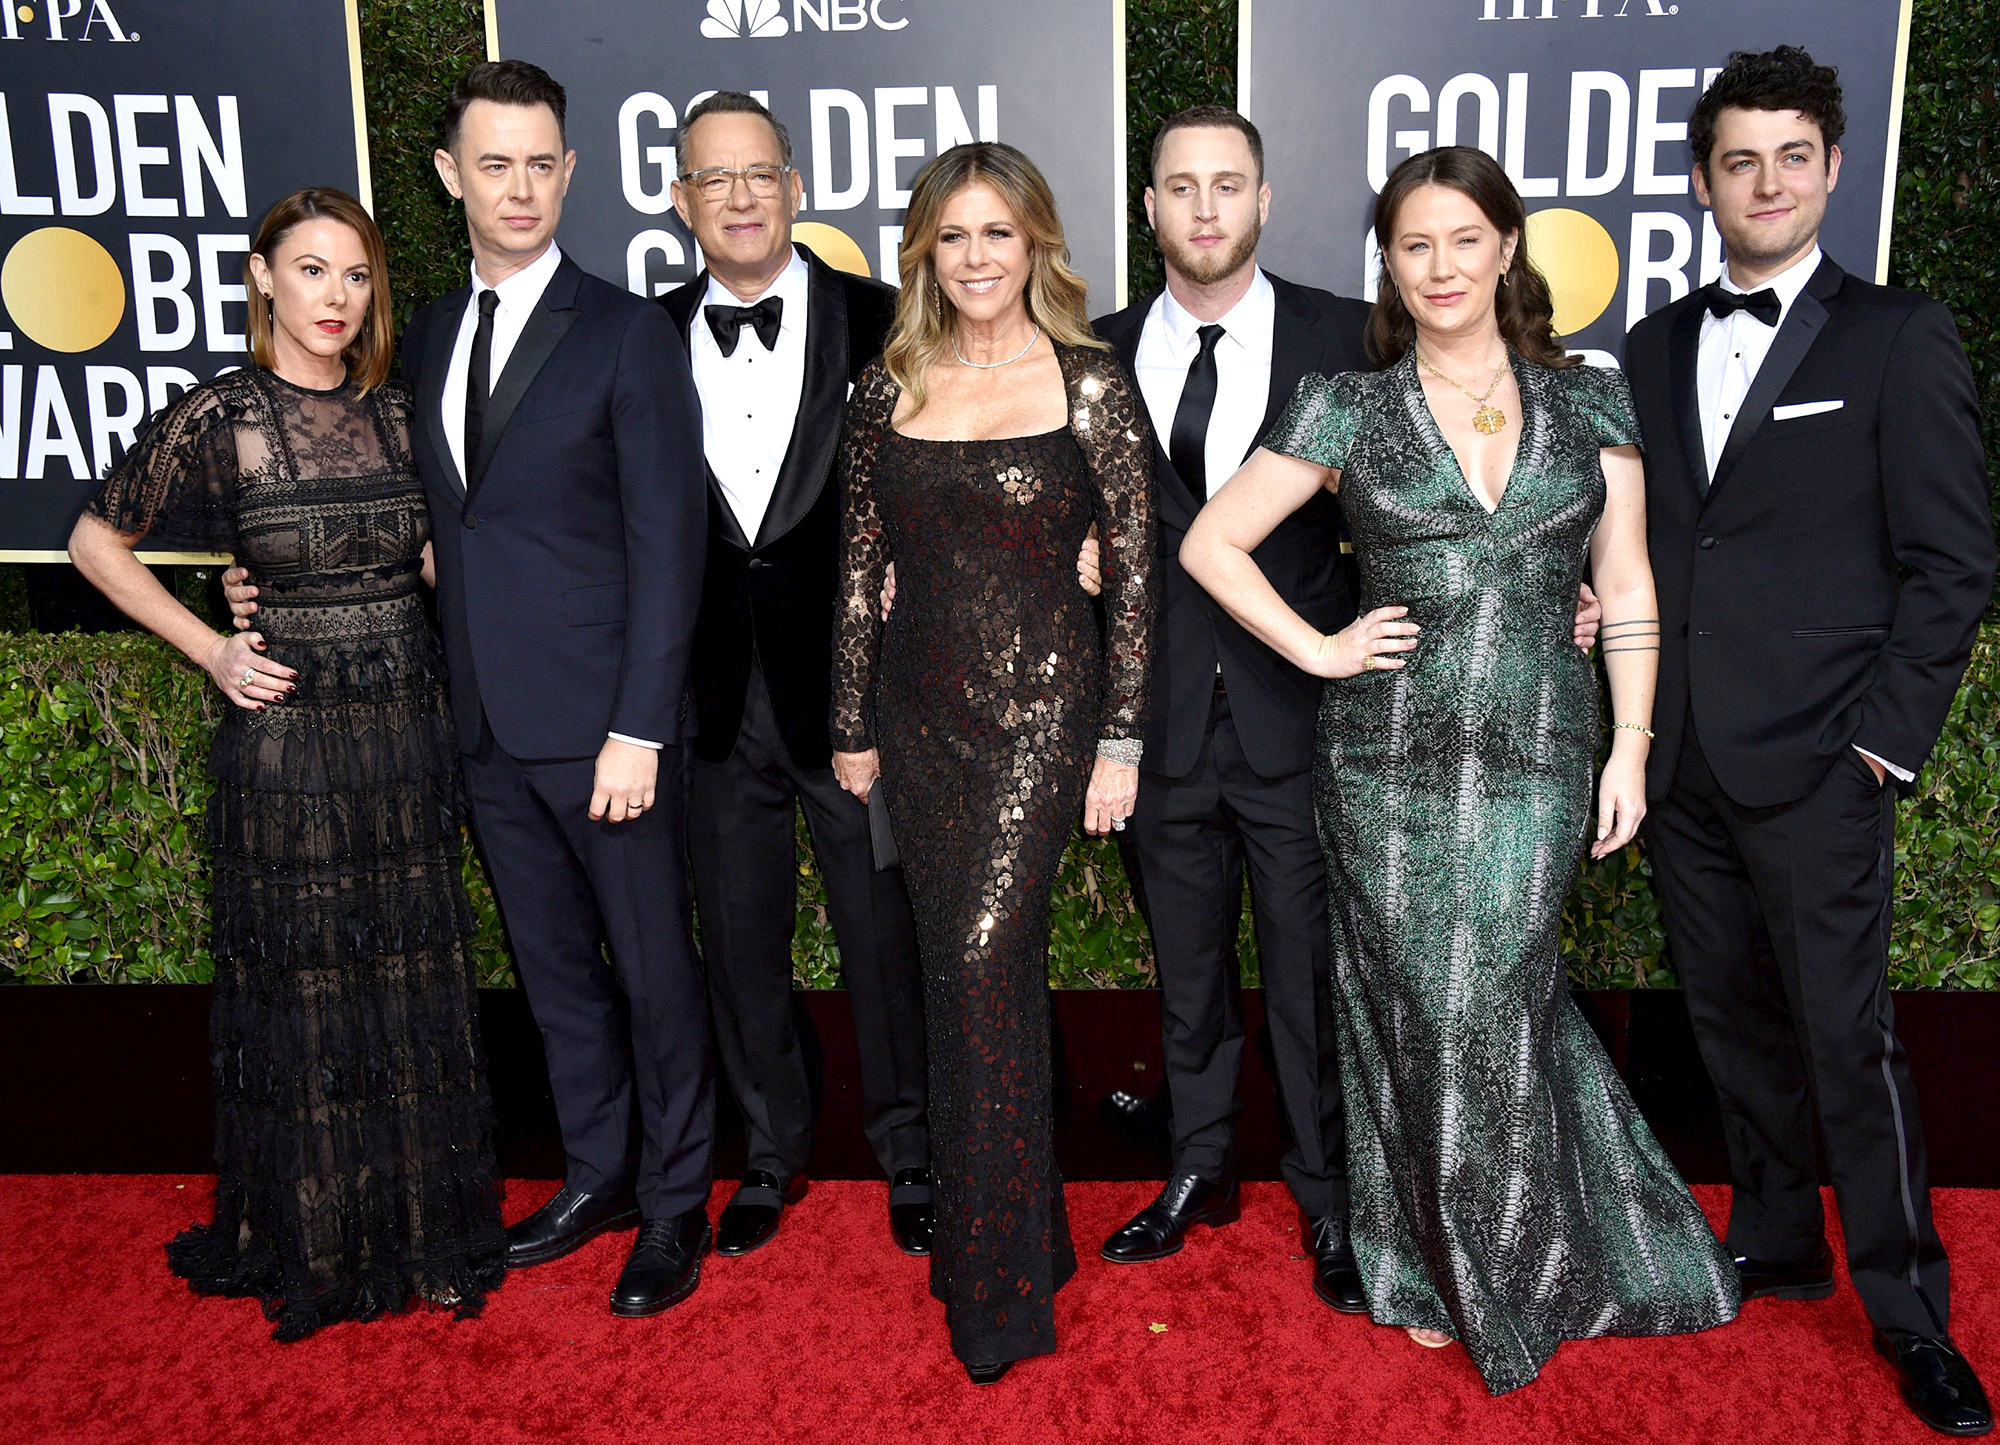 _Tom-Hanks'-Sons-Colin-and-Chet-Speak-Out-After-His-and-Rita-Wilson's-Coronavirus-Diagnosis